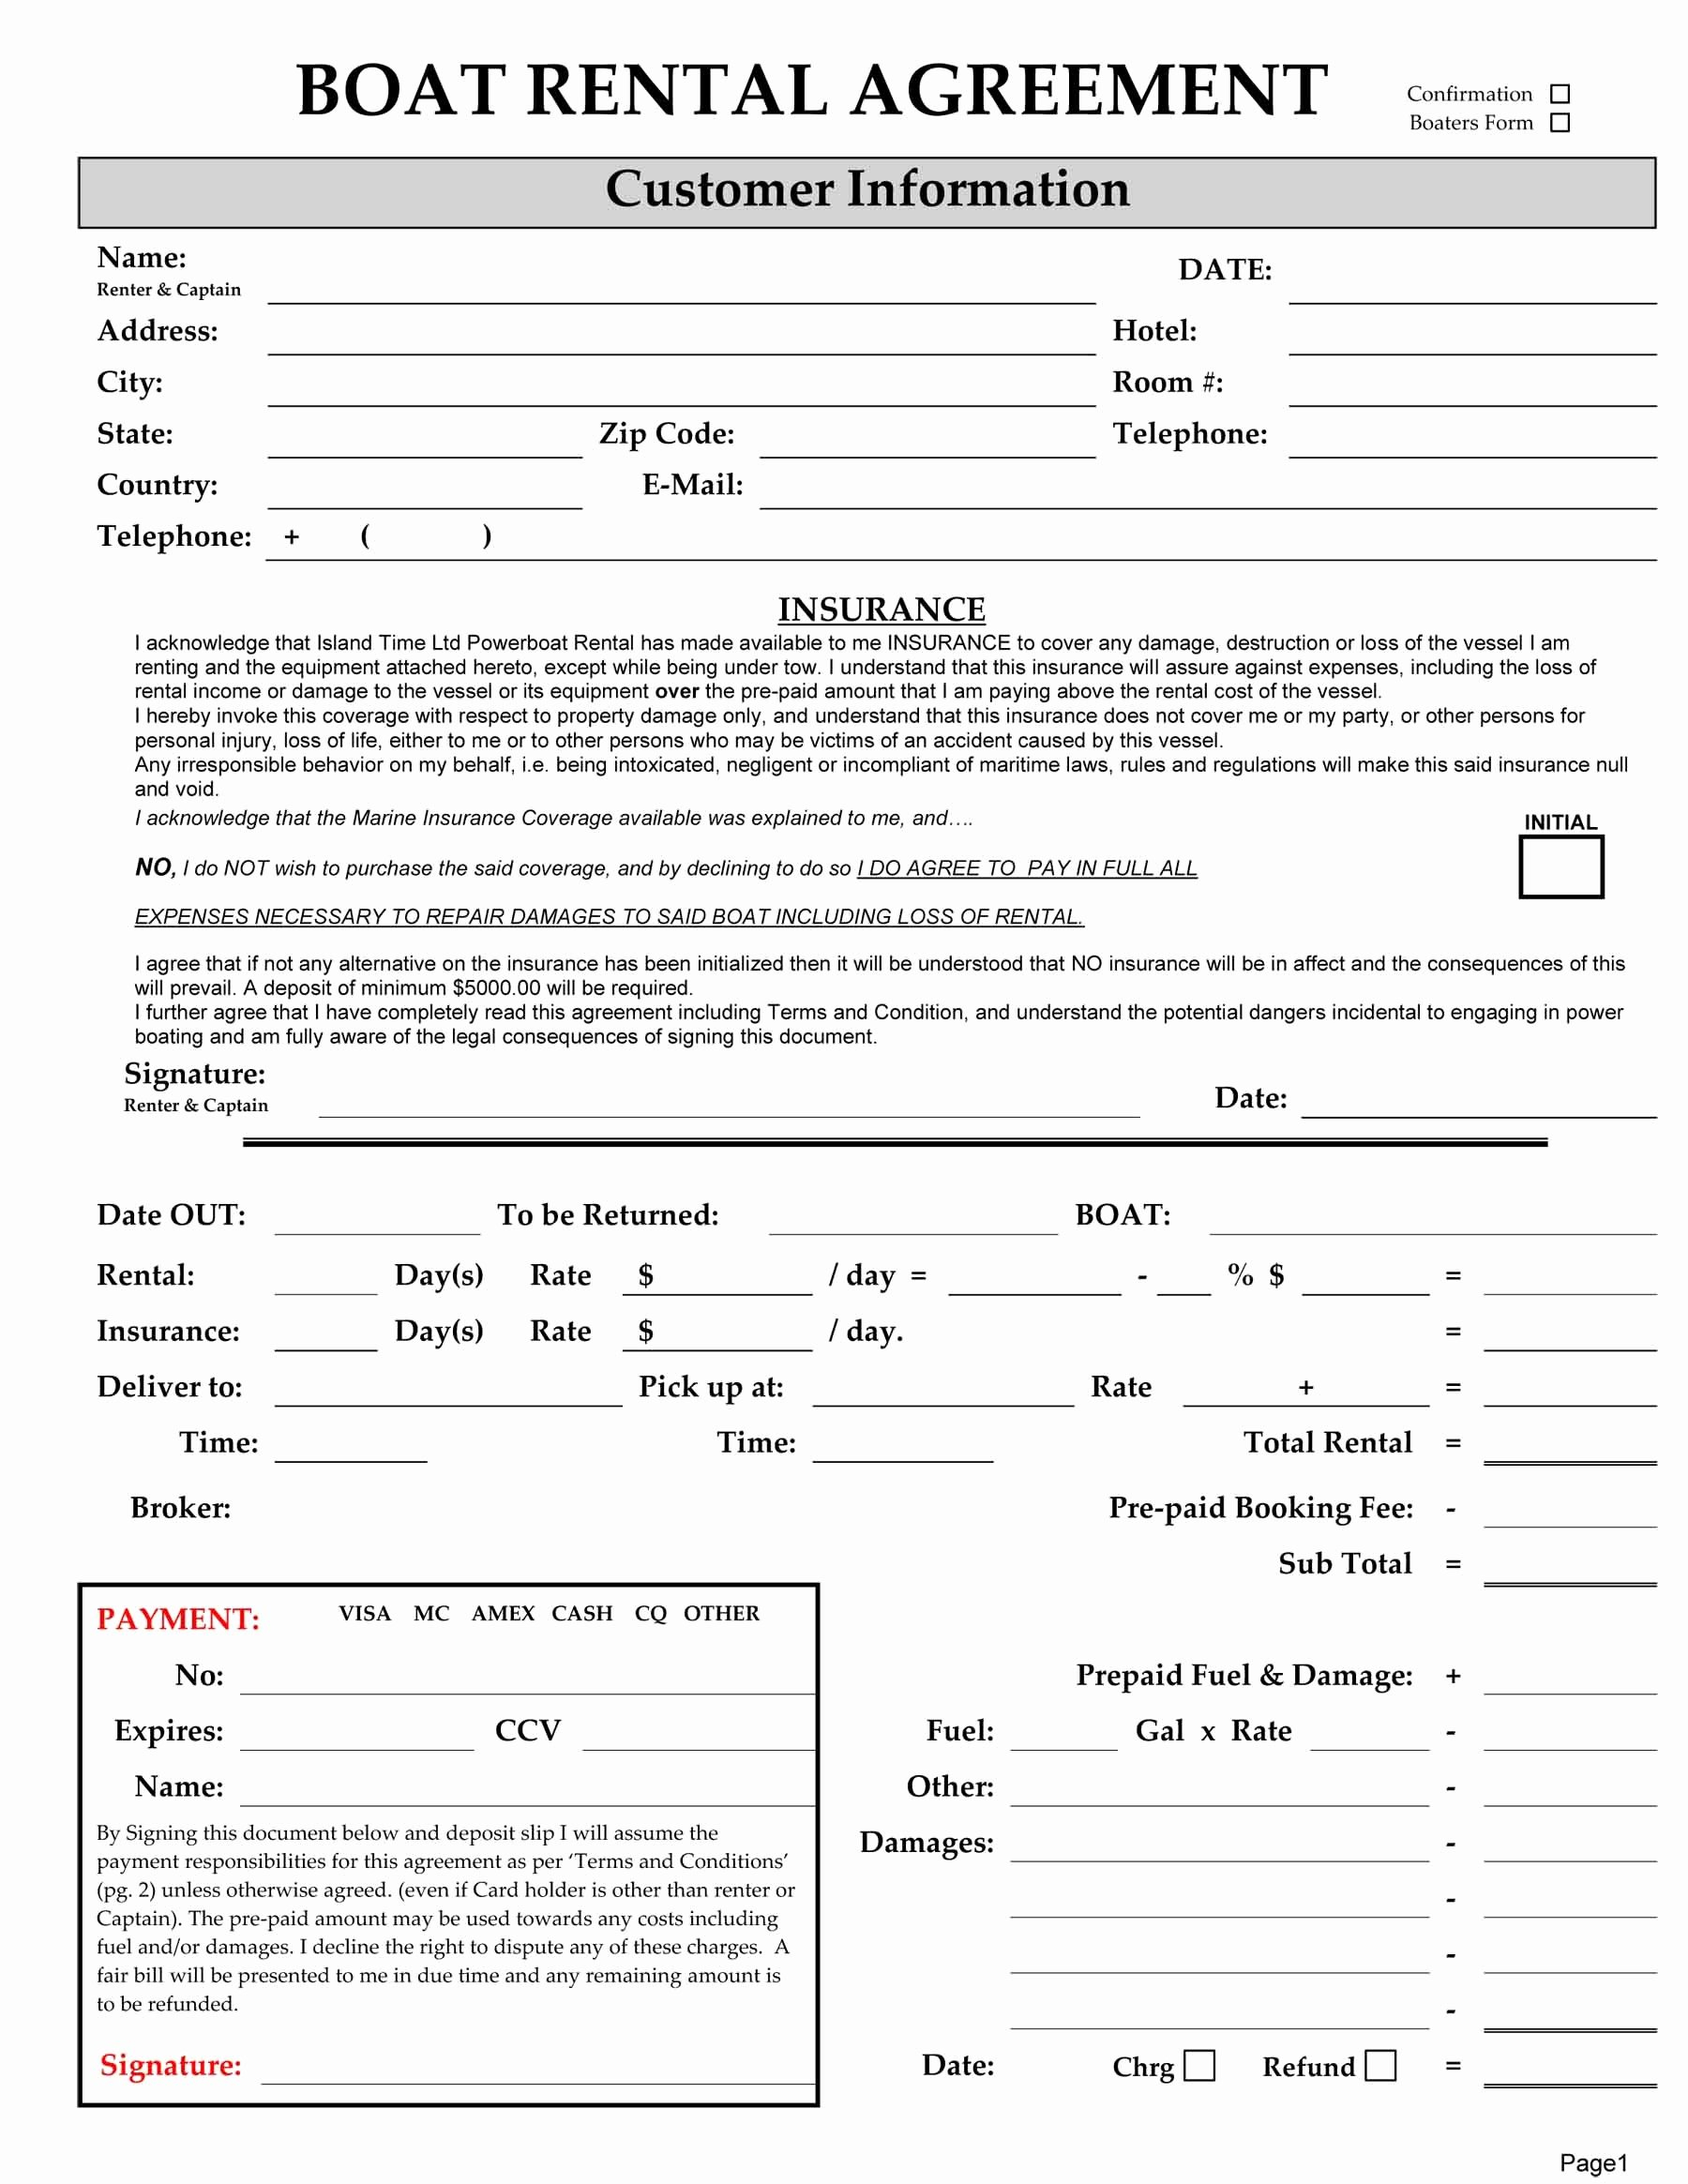 Software Agreement Contract 28 Great Ideas For Software Development Contract Templates Example